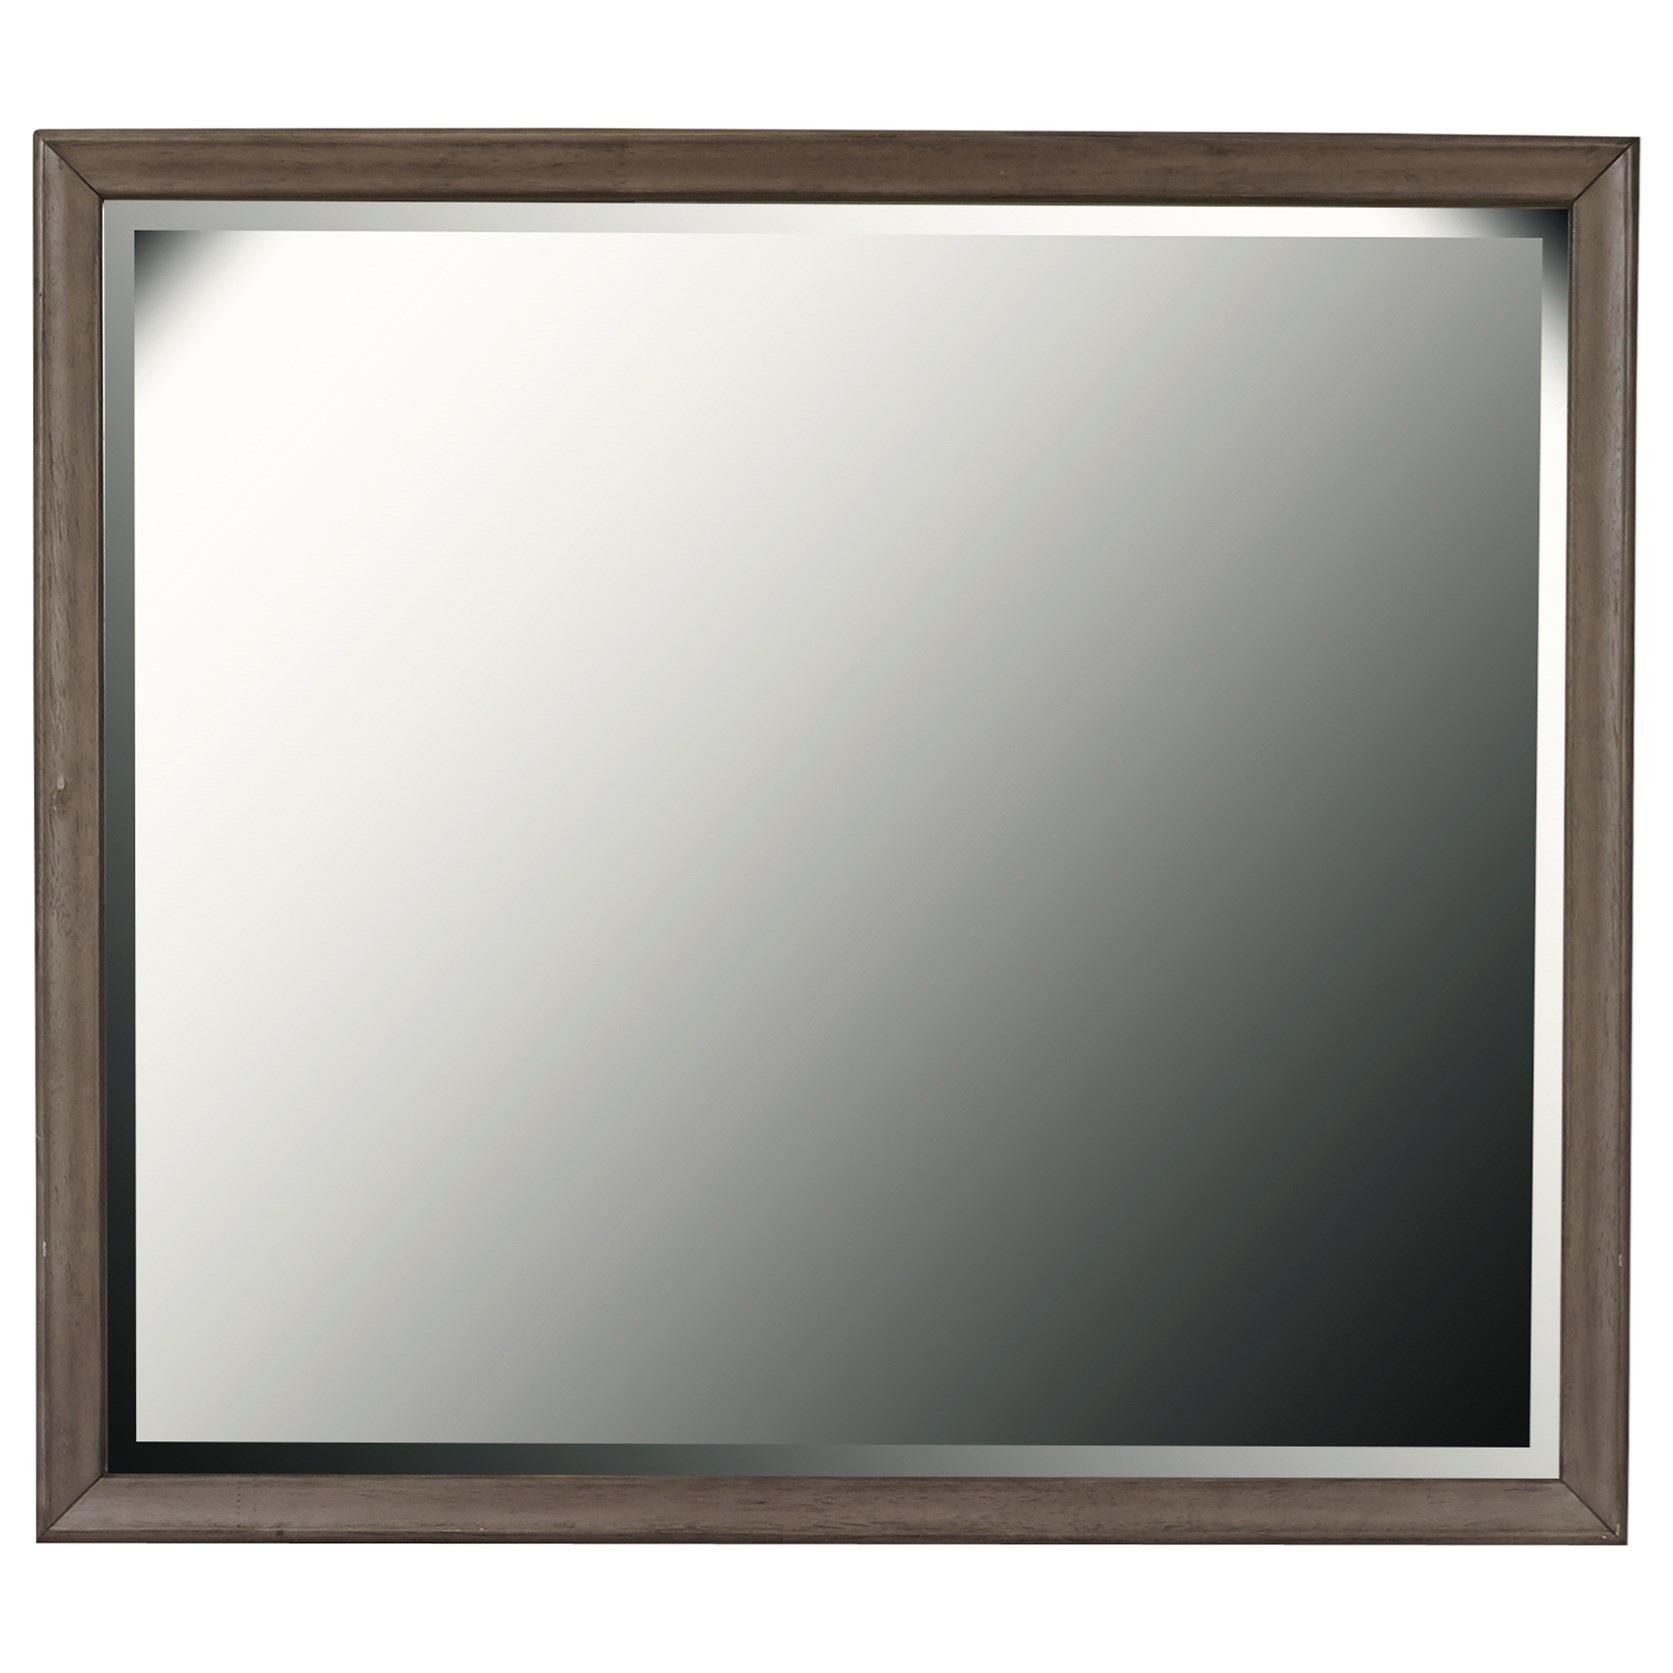 Hanover Square Mirror by Samuel Lawrence at Corner Furniture